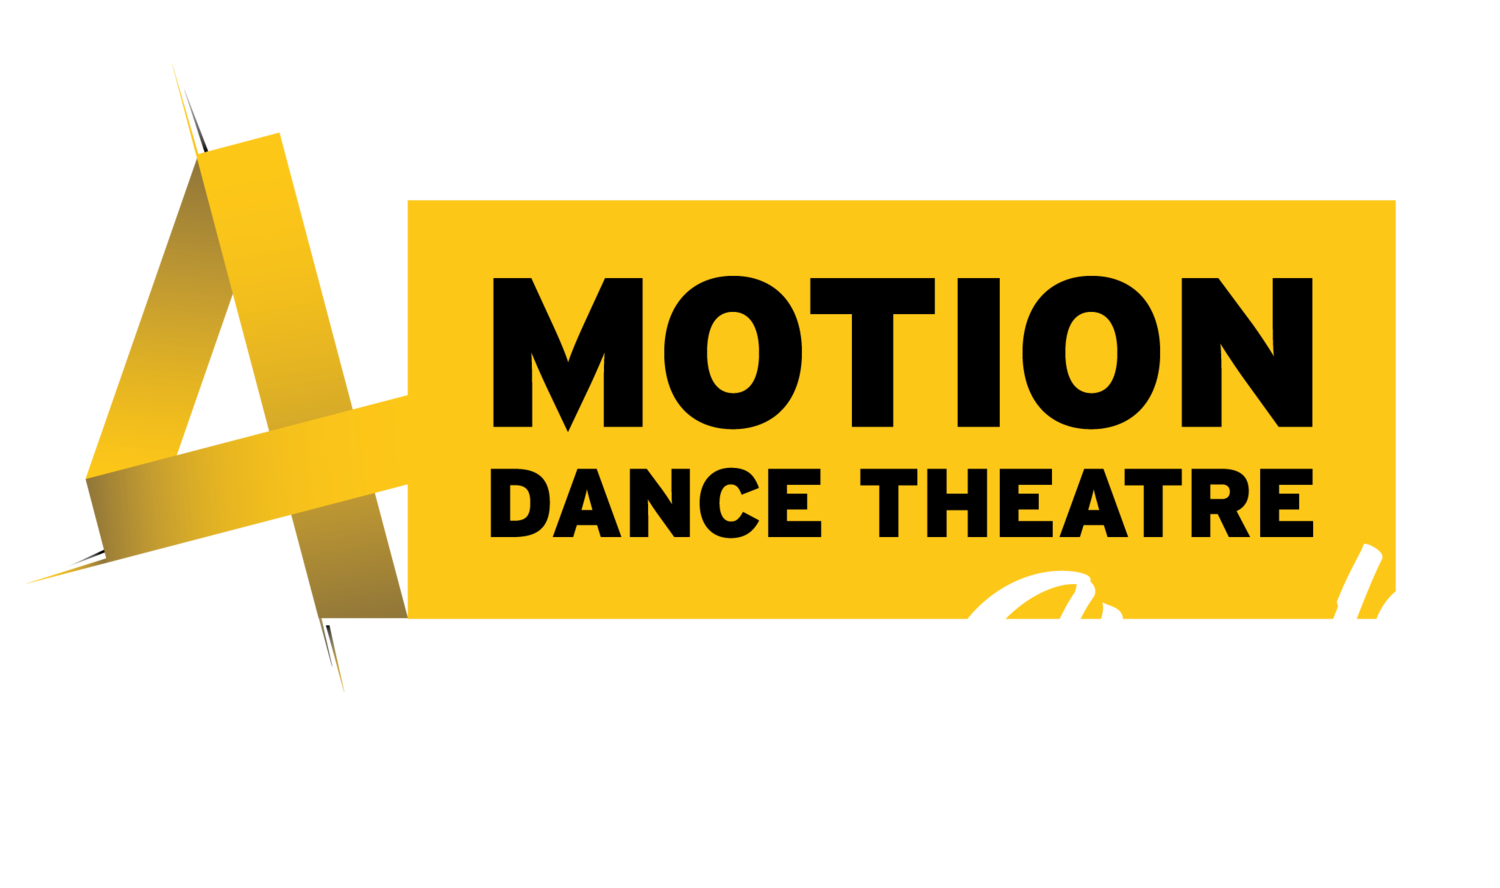 4Motion Dance Theatre Co.